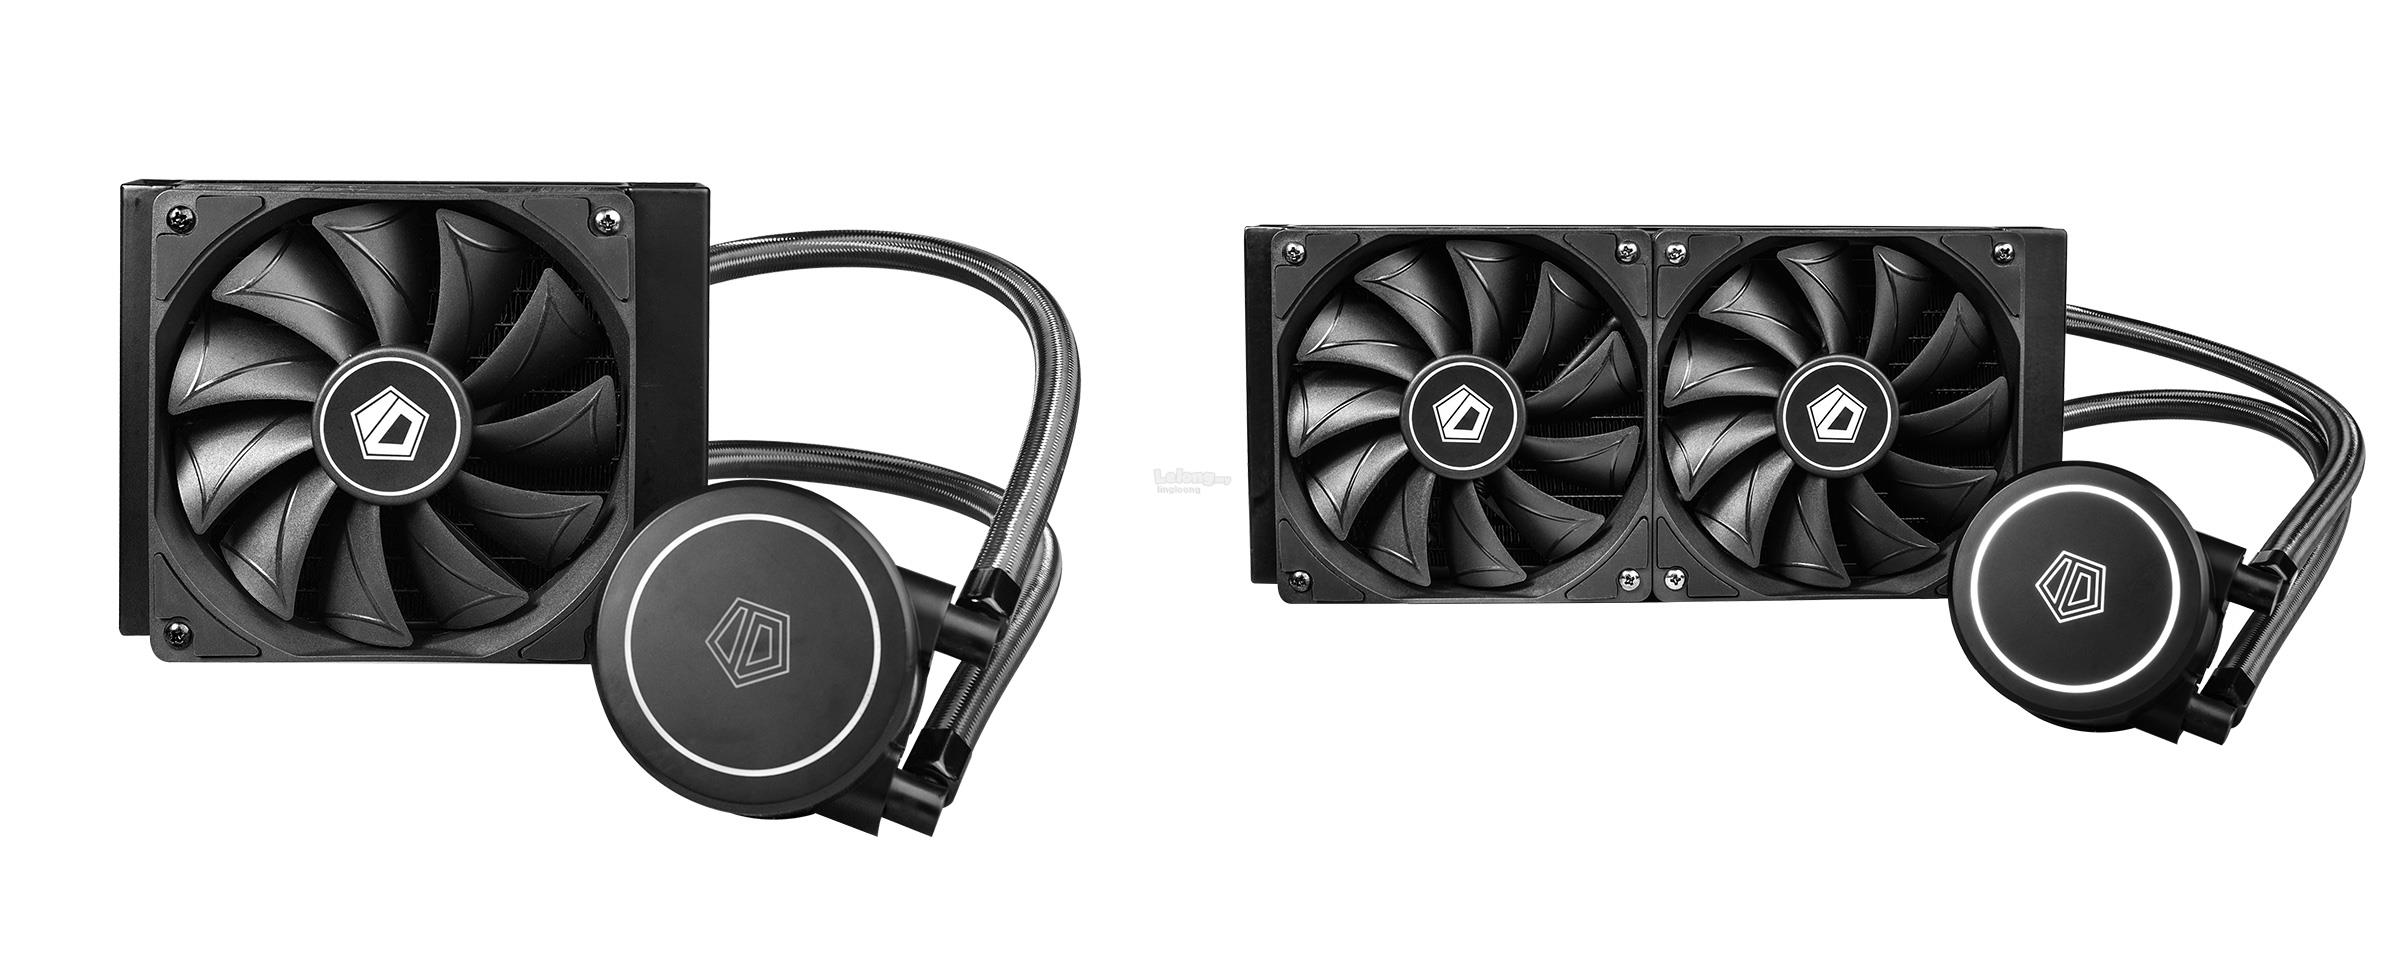 # ID-COOLING Frostflow X Series AIO Liquid Cooler # 120 | 240